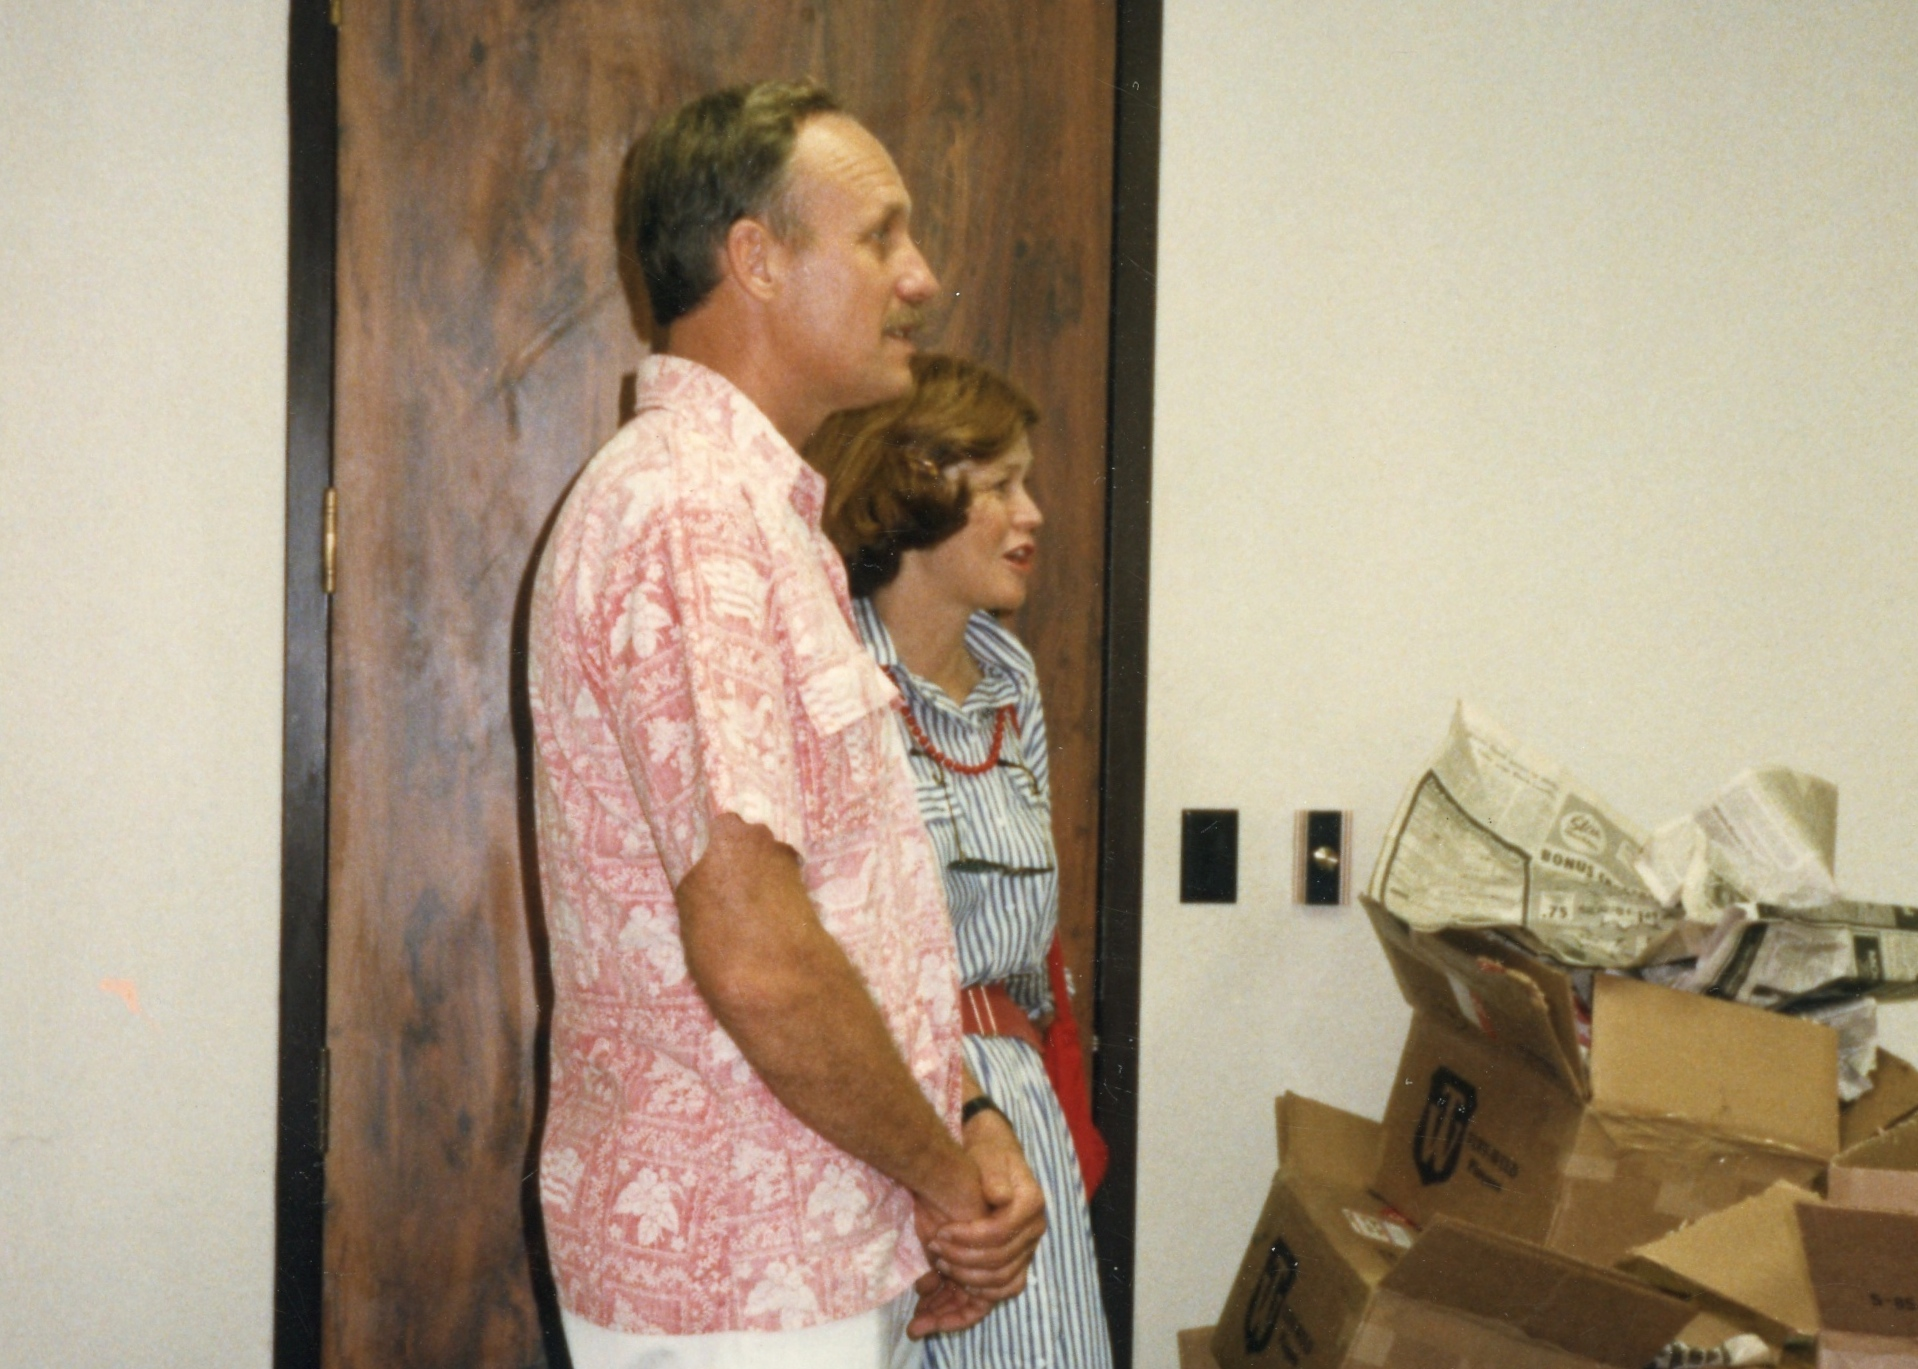 Ironman founder John Collins and his wife visit Ironman headquarters in Kona, 1985.